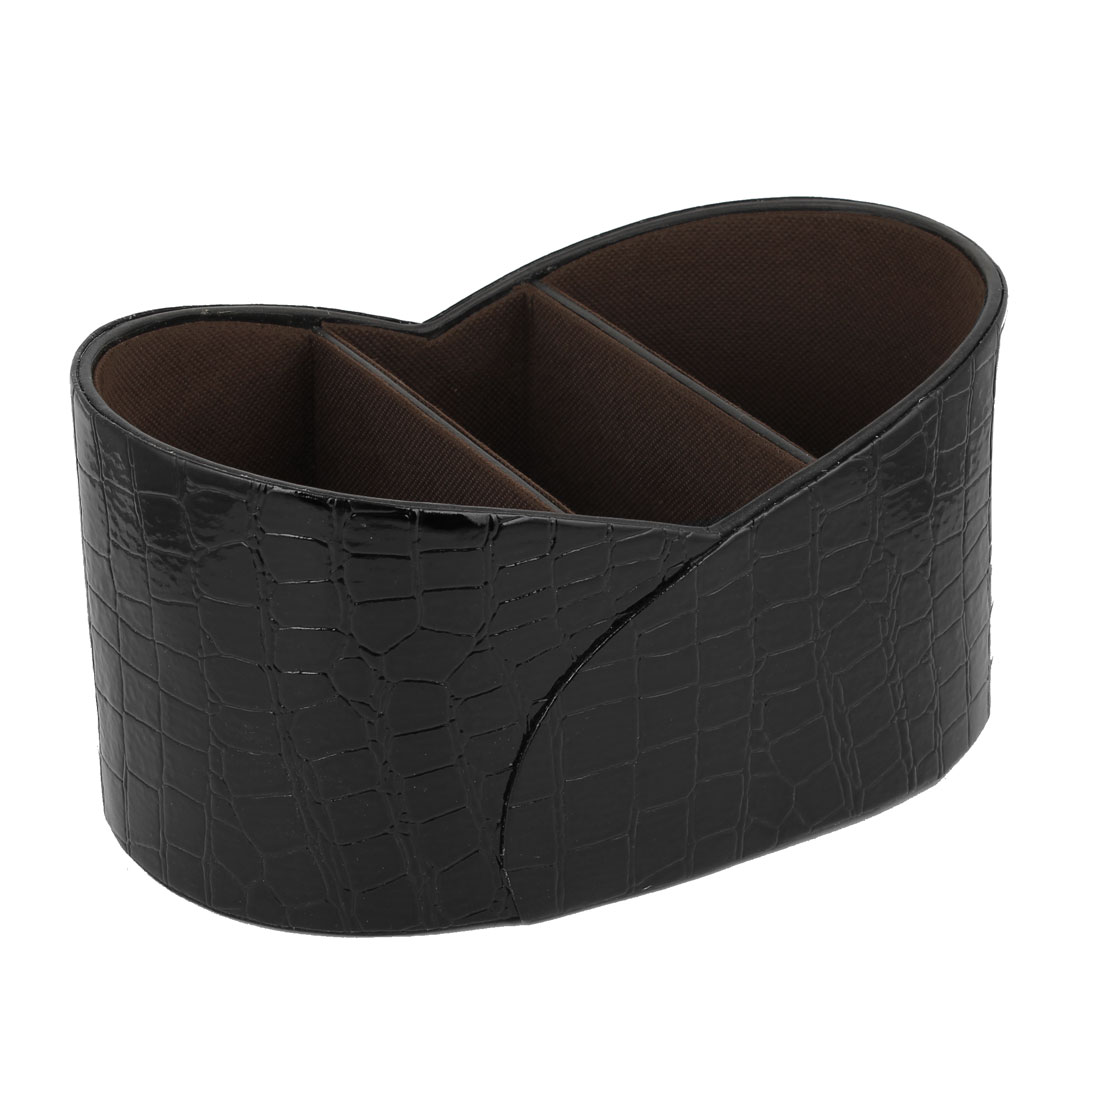 Black Crocodile Print Faux Leather Ornament Storage Basket Holder